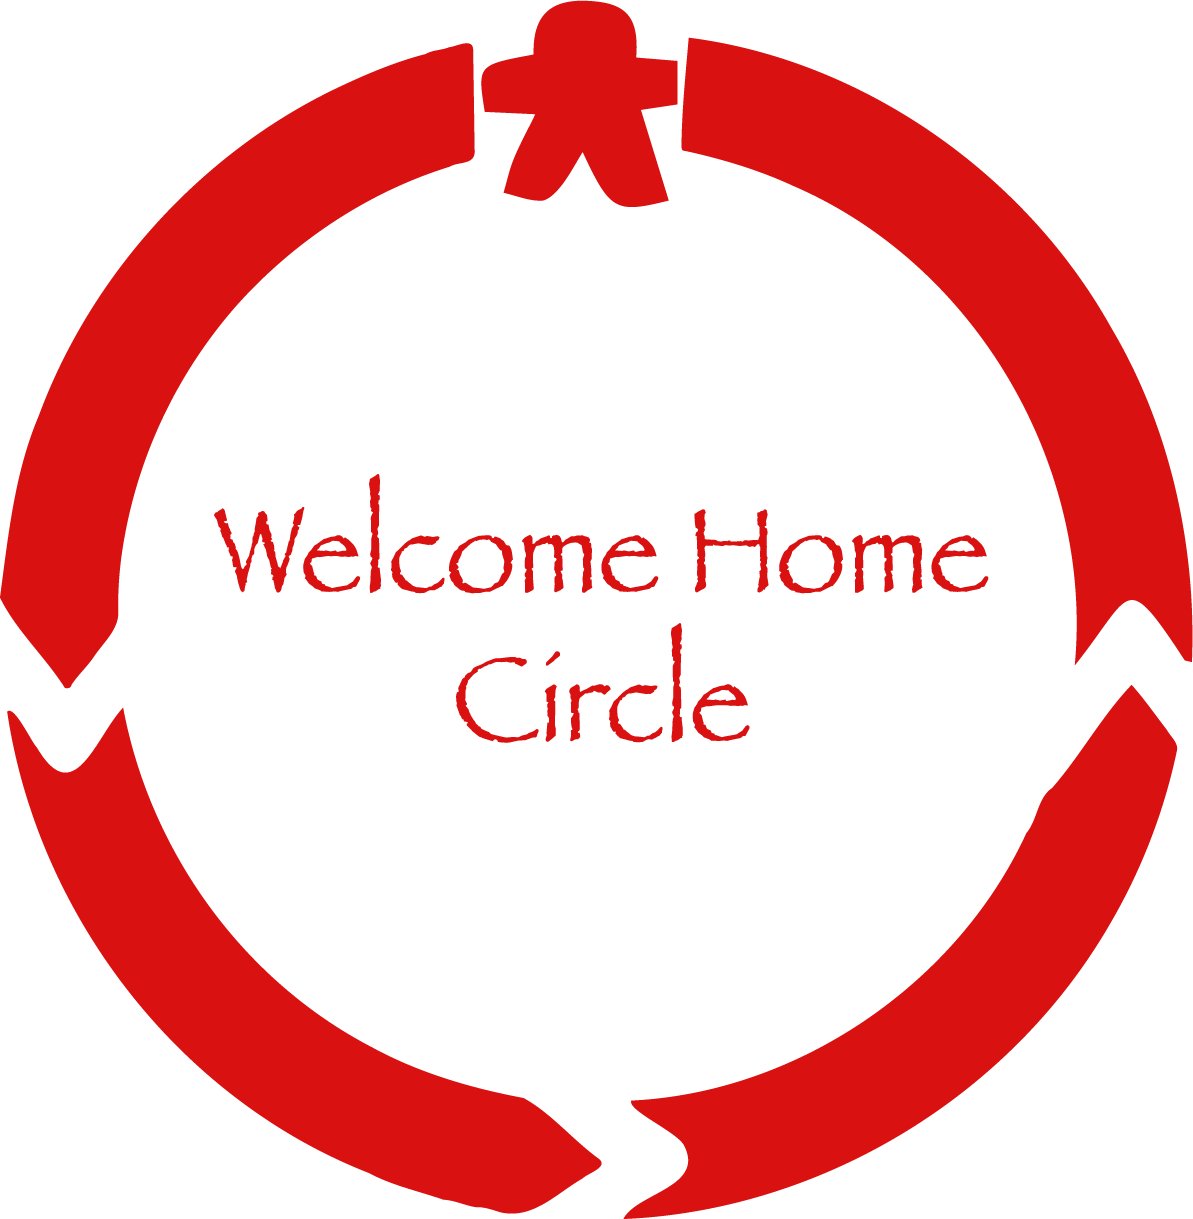 Welcome Home Circle, Akwesasne, restorative justice, tiny homes, tiny homes for inmates